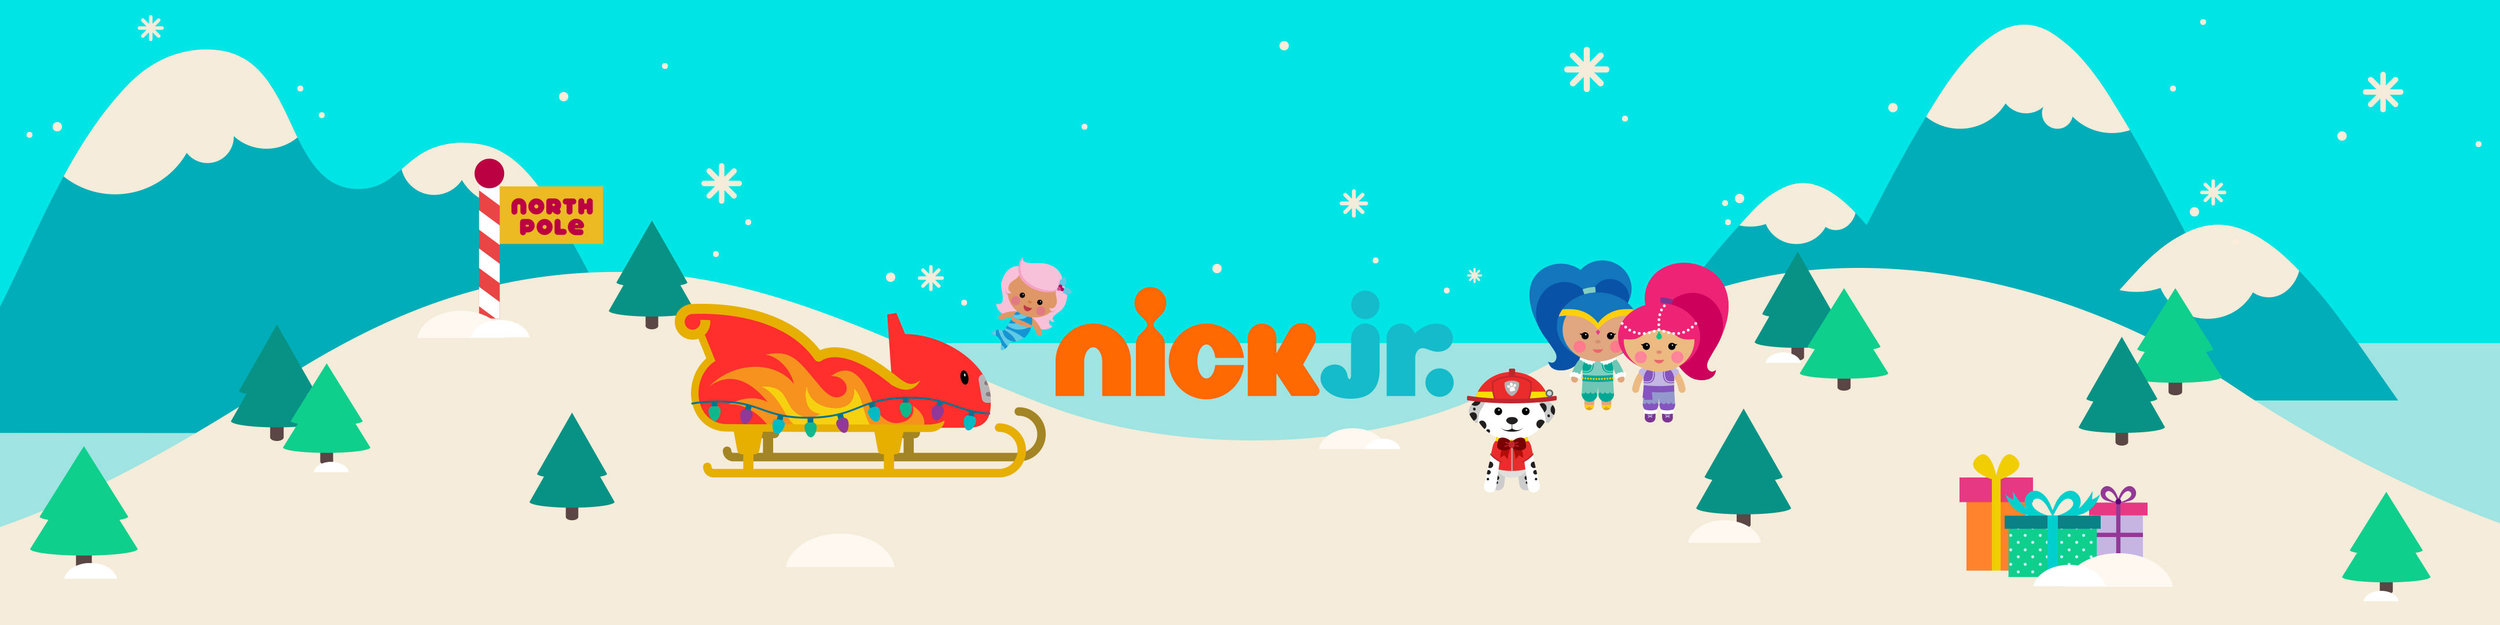 Nick Jr.  Apple Promotional Art